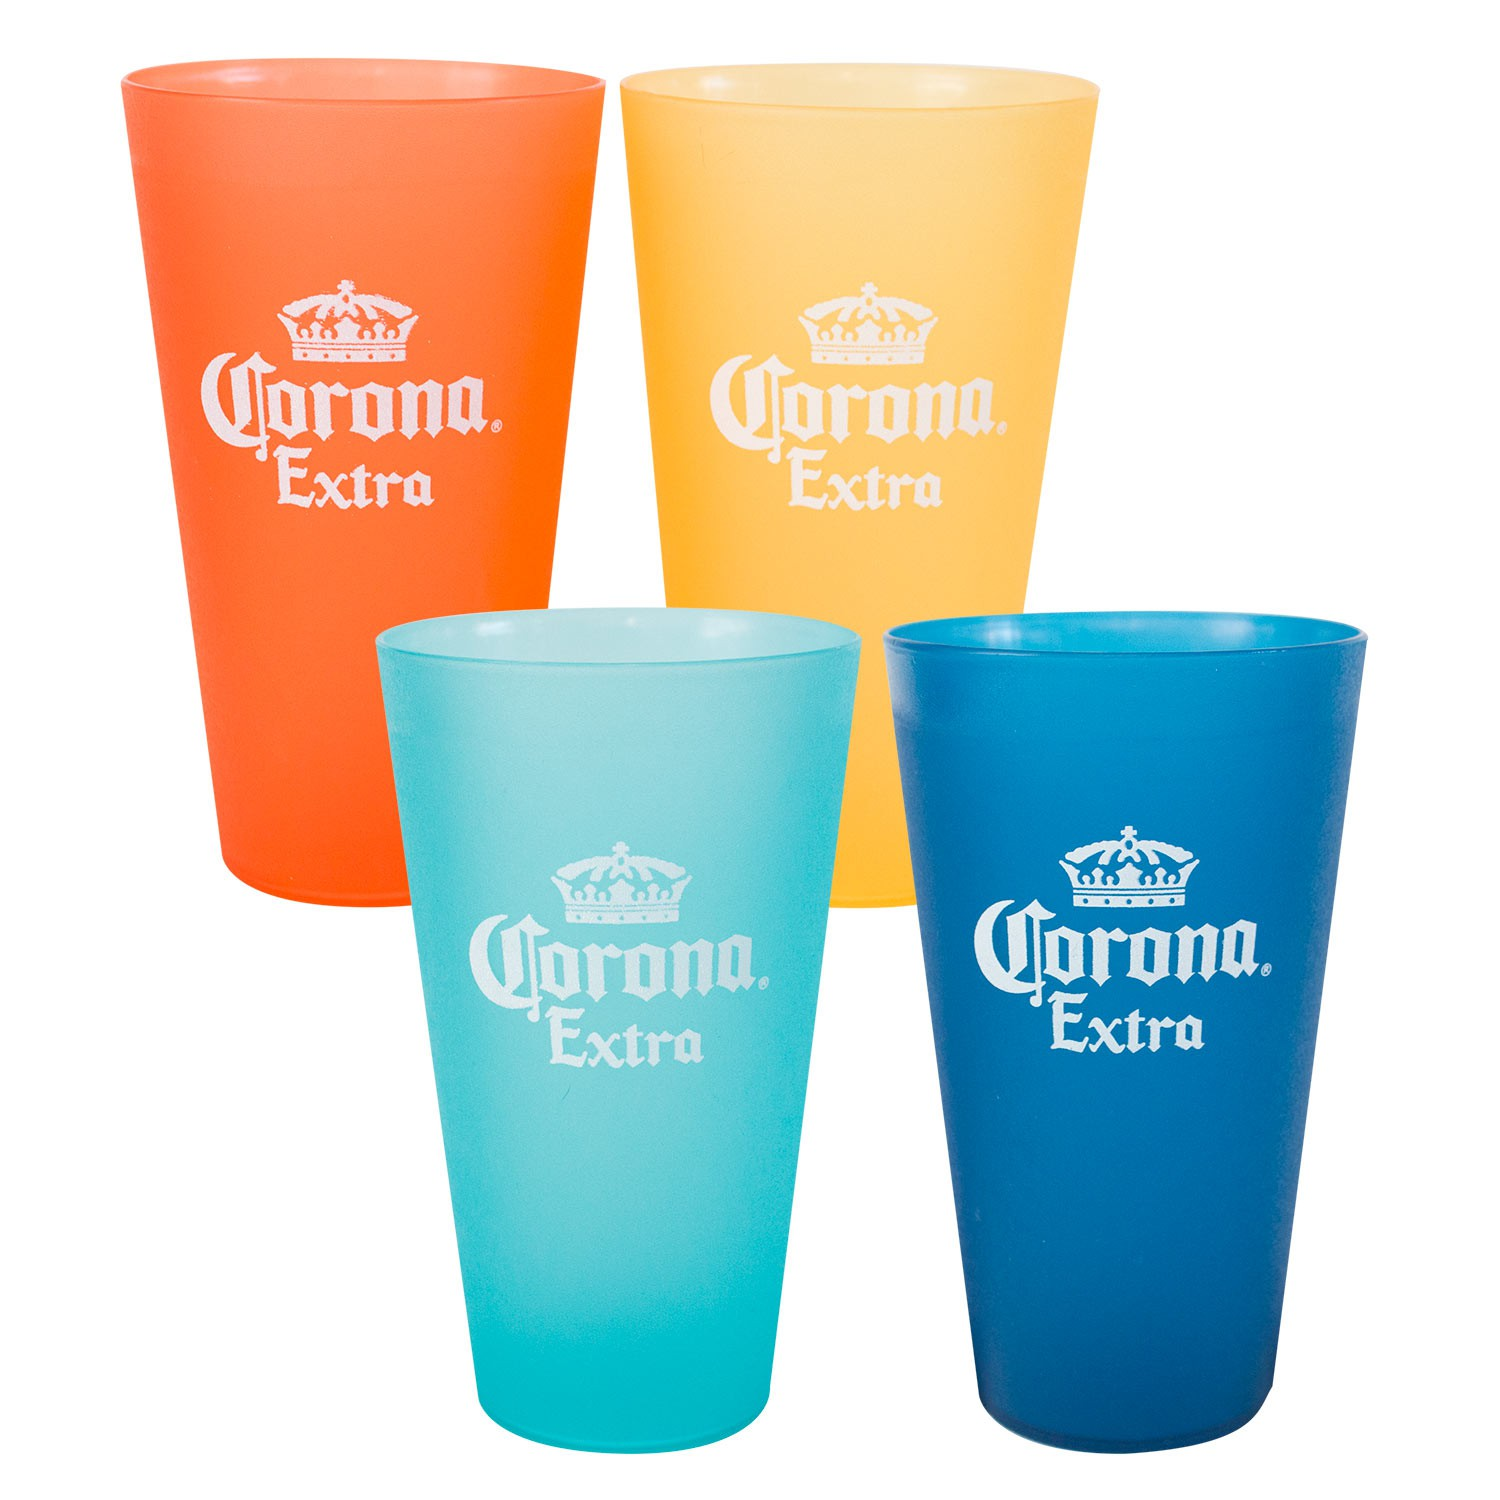 Corona Extra Multi Colored Plastic Cup Set